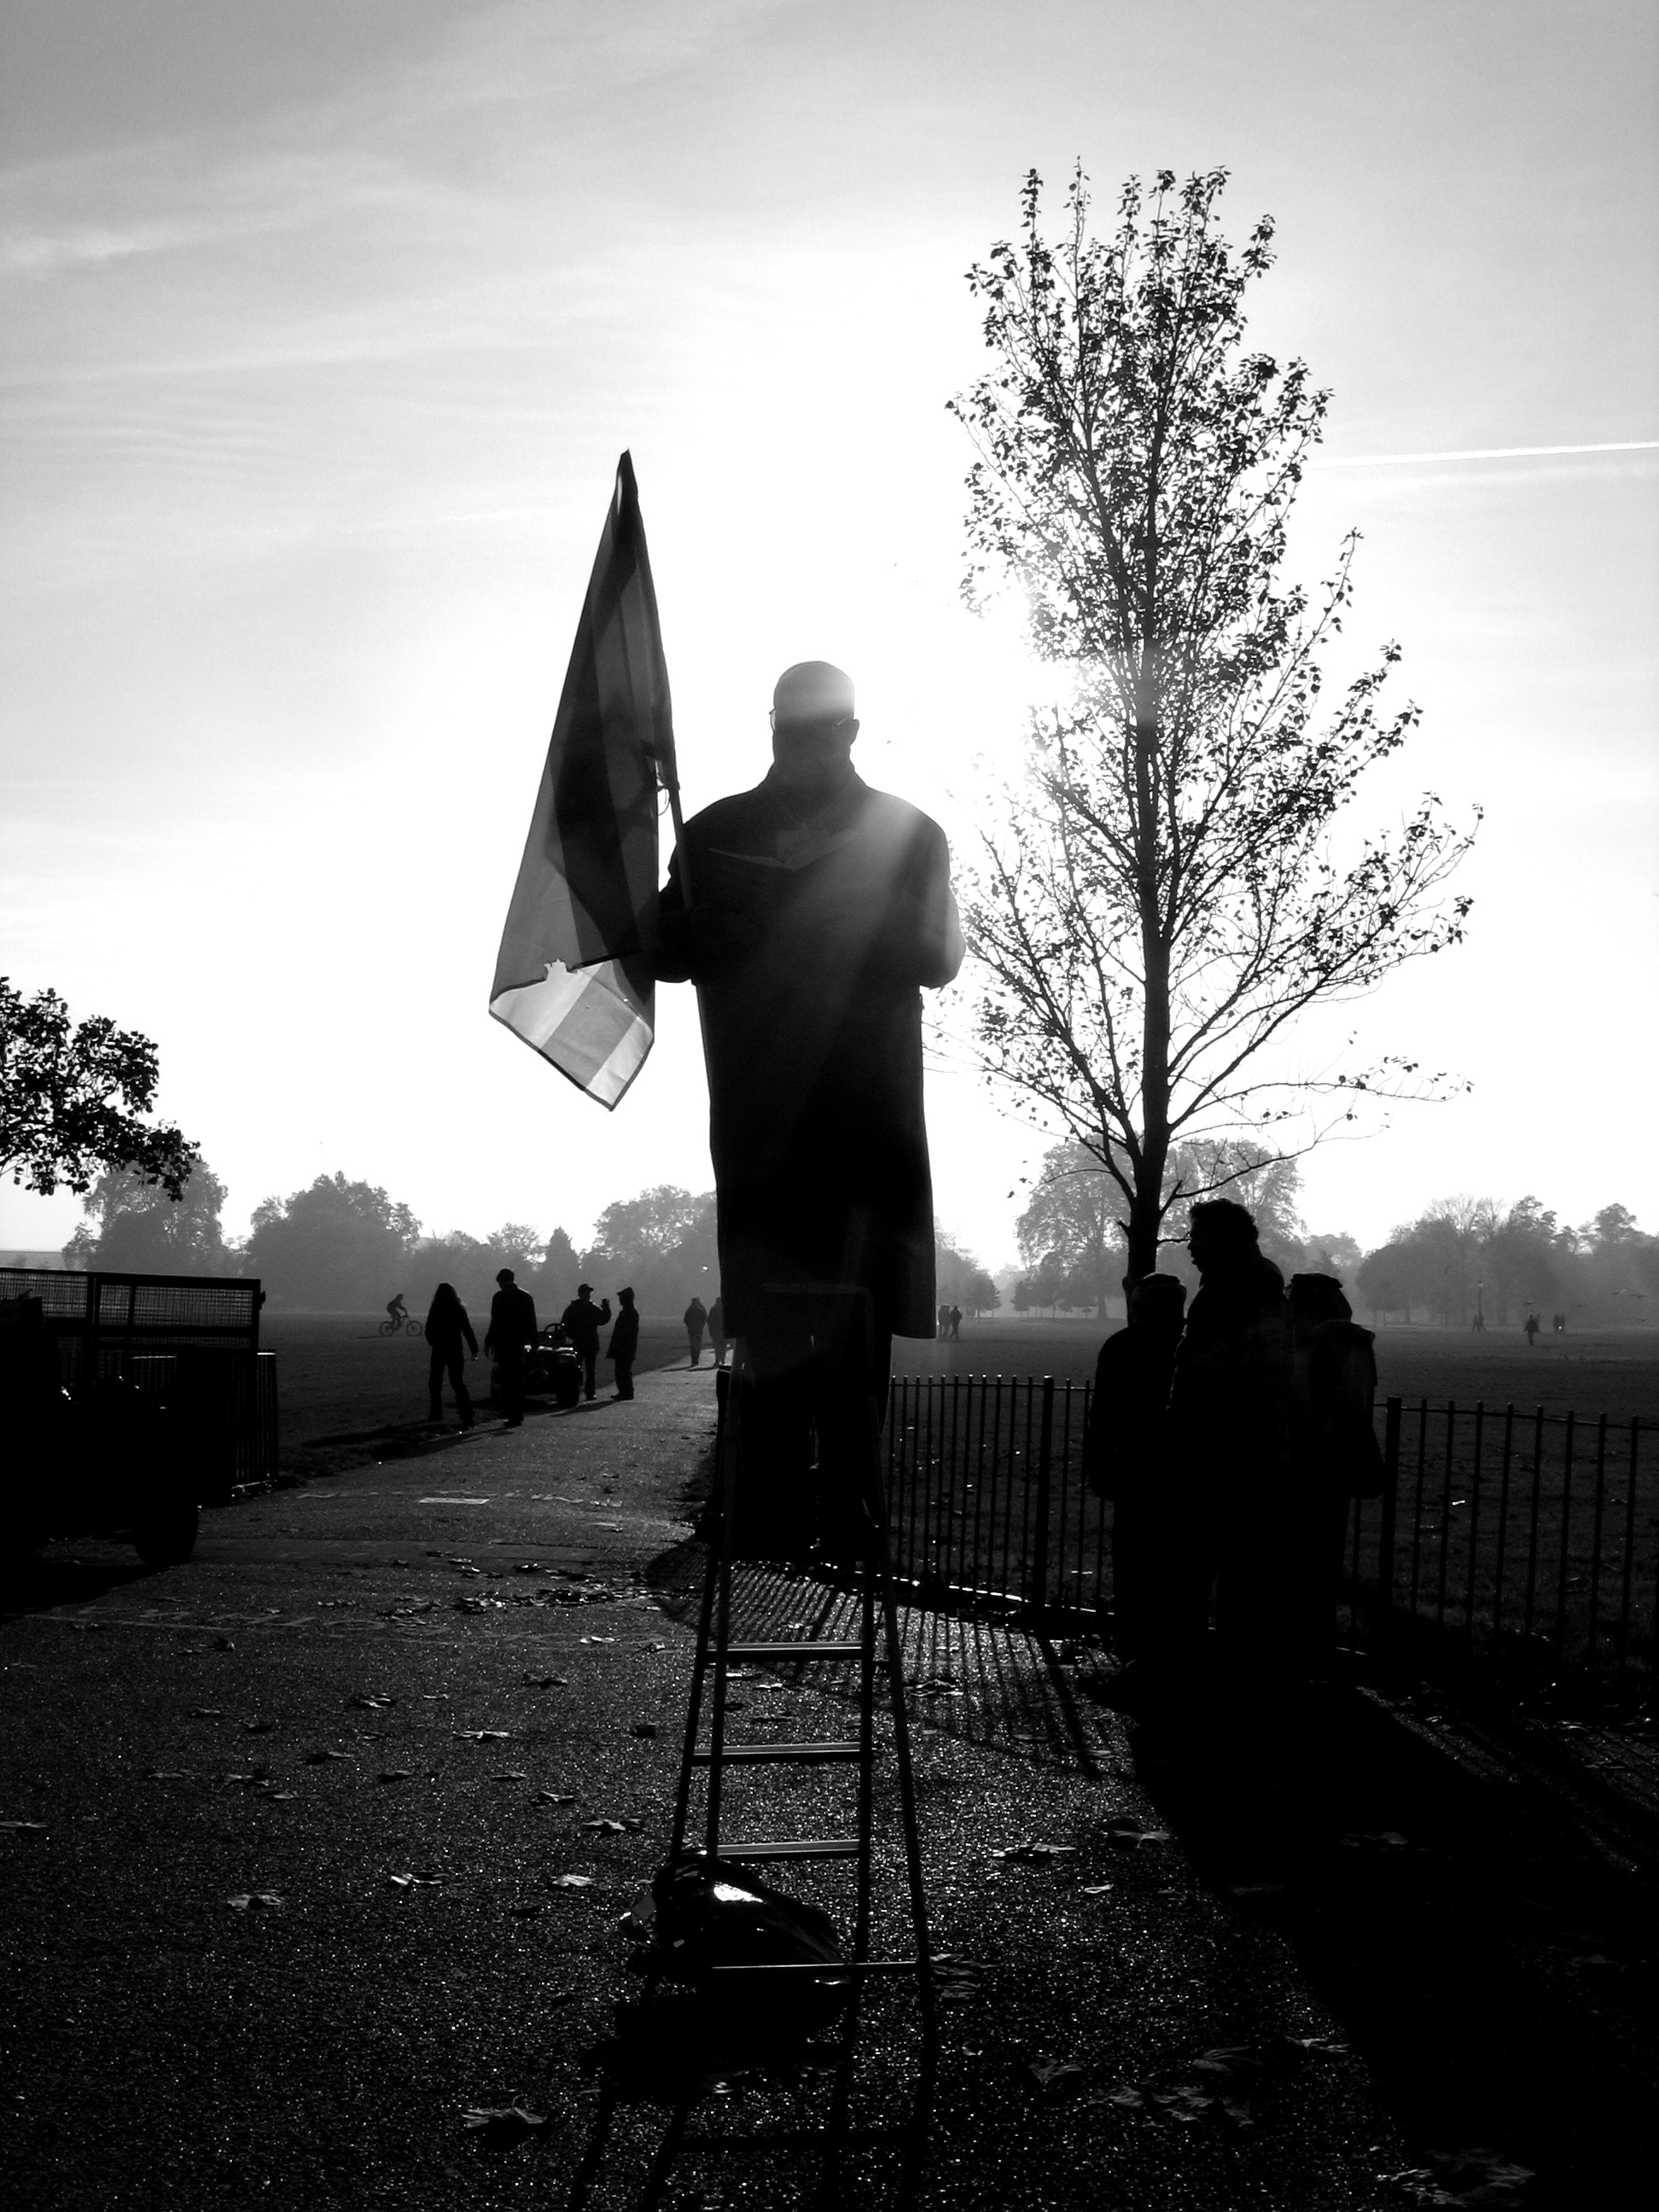 2005-11-20 - United Kingdom - England - London - Hyde Park - Speakers' Corner